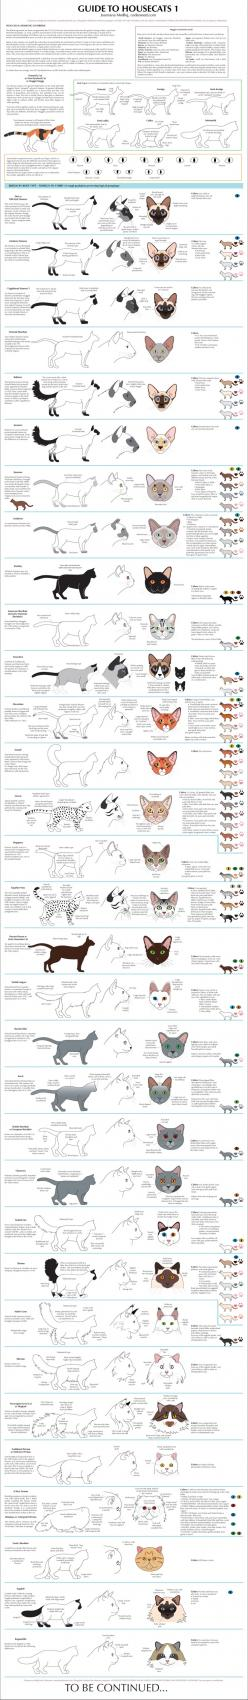 Cat breeds: Cat Drawing Tutorial, Drawing Cat, Housecat Breeds, Vet Tech, Cat House, House Cat, Cats Breed